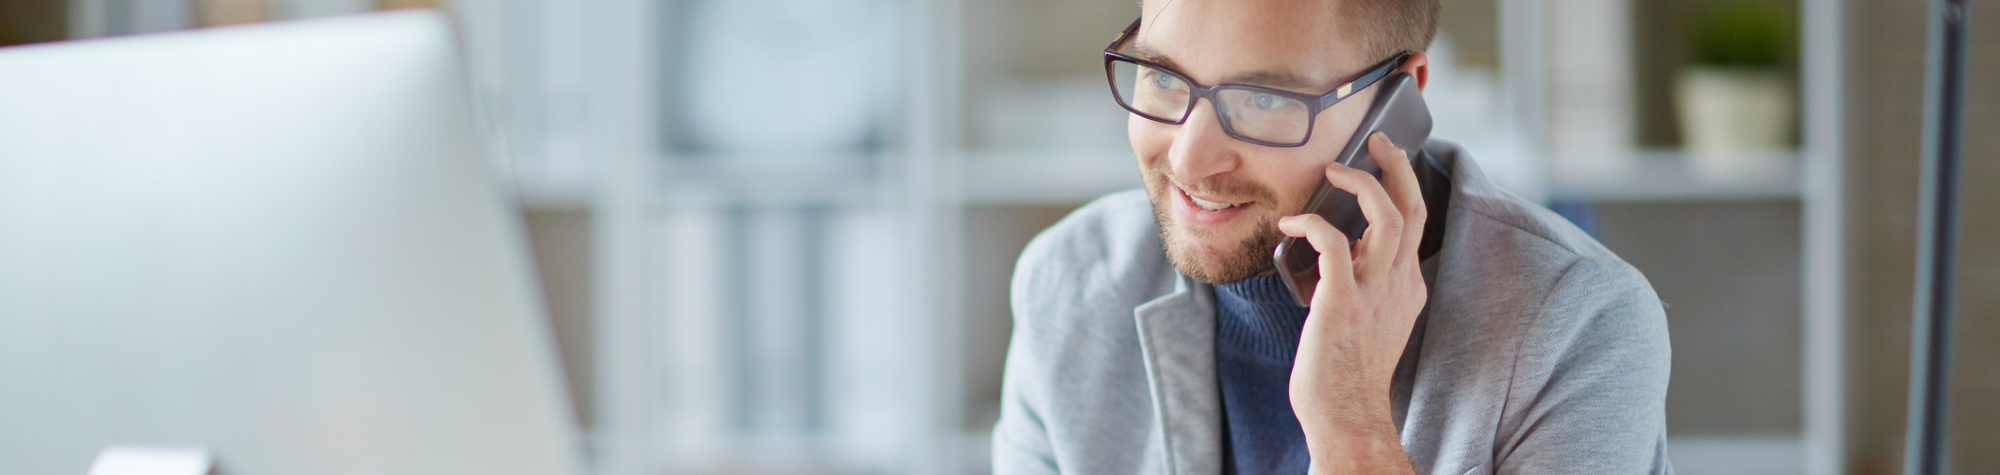 Search Contact Us Header Image. Featuring a brown-haired, bearded, male recruitment consultant wearing glasses and calling back a candidate on his mobile phone as he looks at his desktop. Also featuring a faint office background. Search Consultancy.